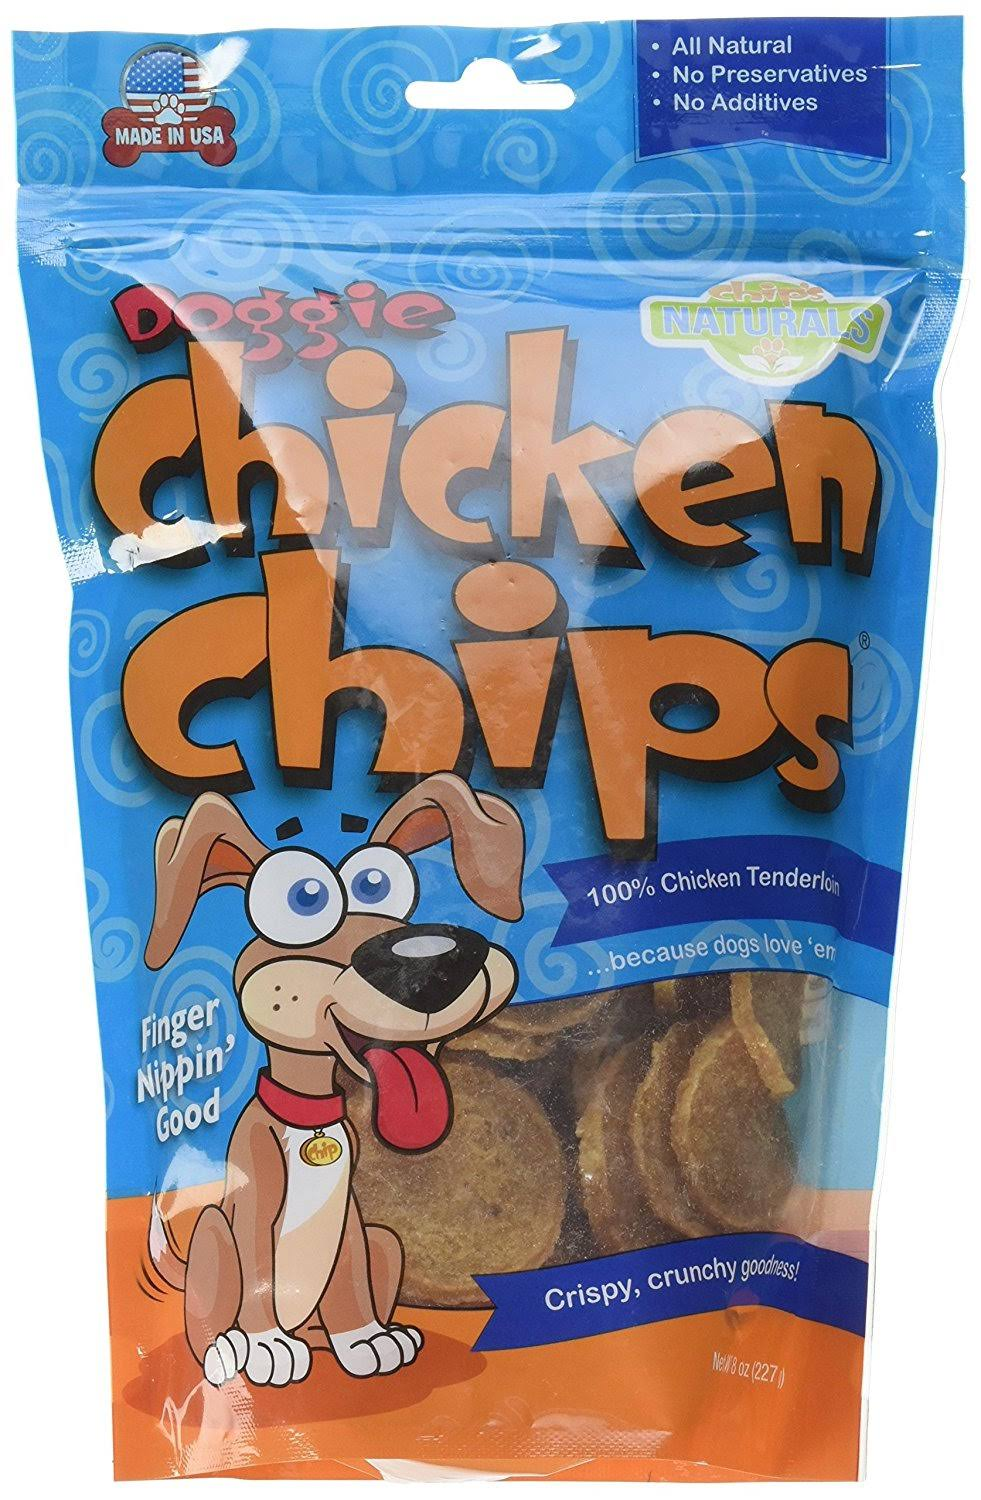 All Natural Chicken Chips- Dog Treats (Medium- 8 oz. Bag)